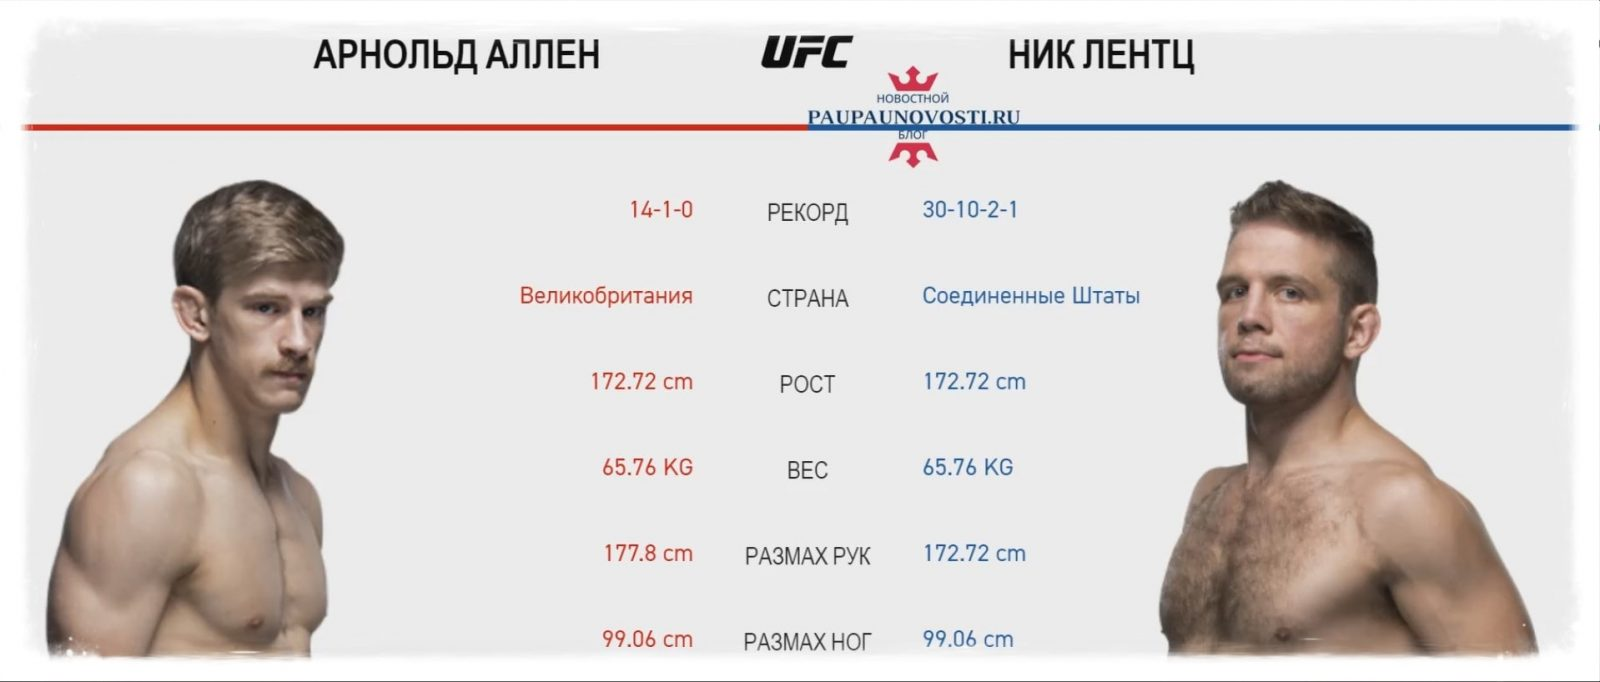 ufc-fight-night-166-kard-data-i-uchastniki-blaydes-vs-dos-santos